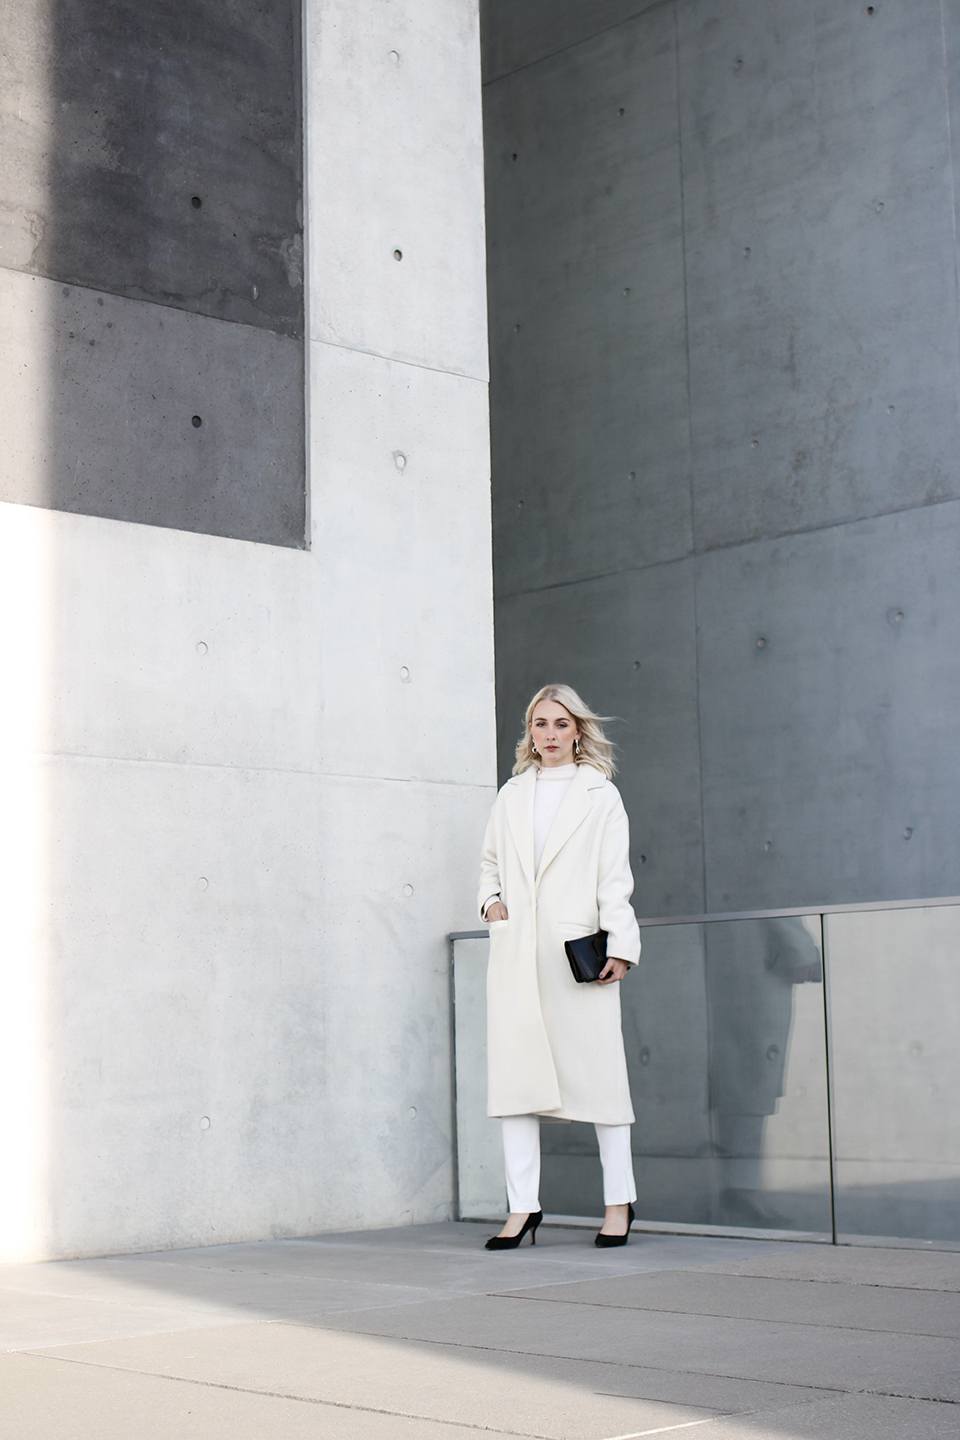 noa-noir-fashion-outfit-all-white-monochromatic-winter-look-lalaberlin-lalagirls-berlin-minimalist-streetstyle-1.jpg